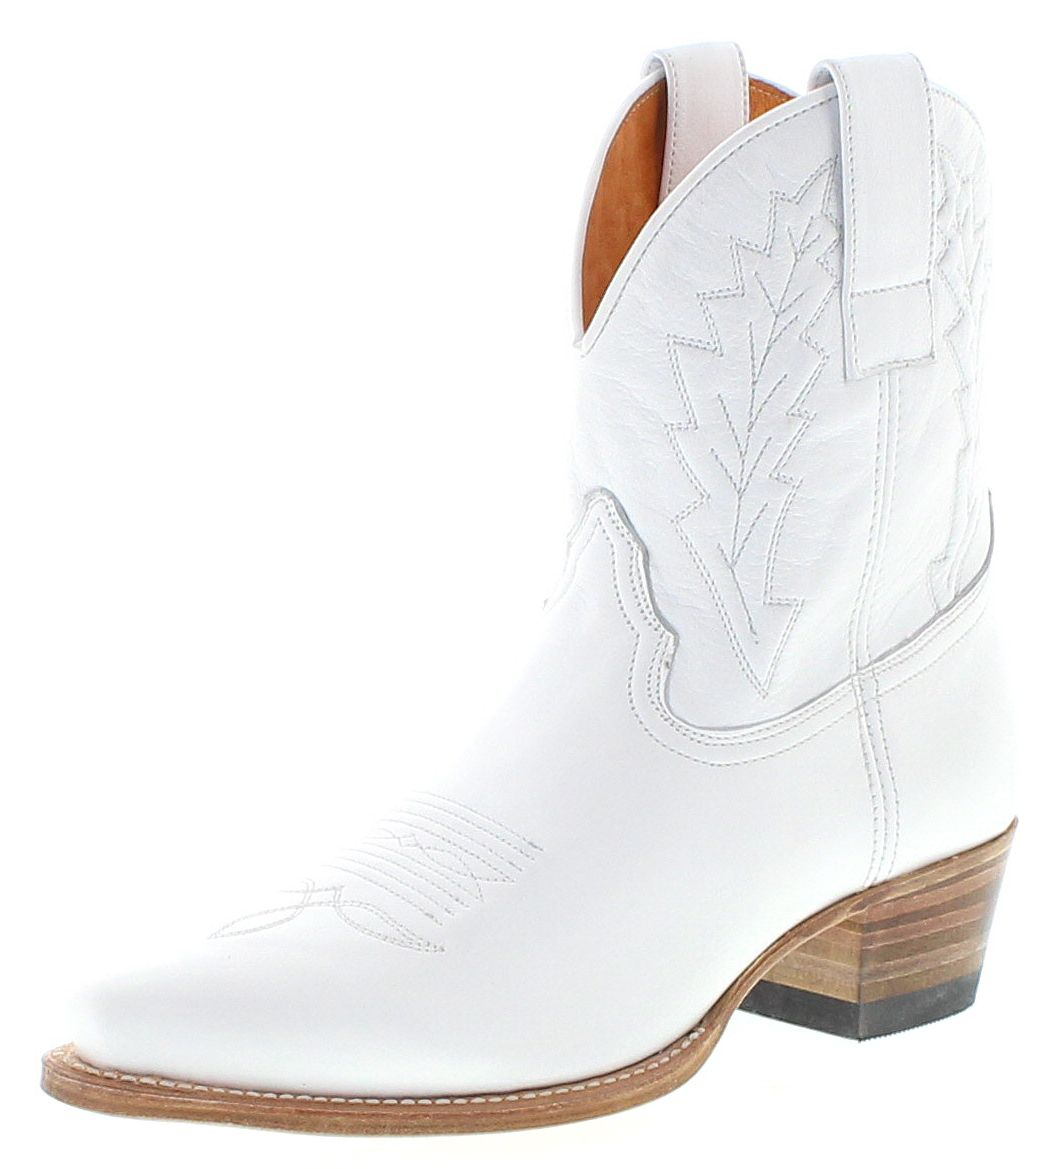 Sendra Boots 16367 Blanco Ladies Western Boots - White